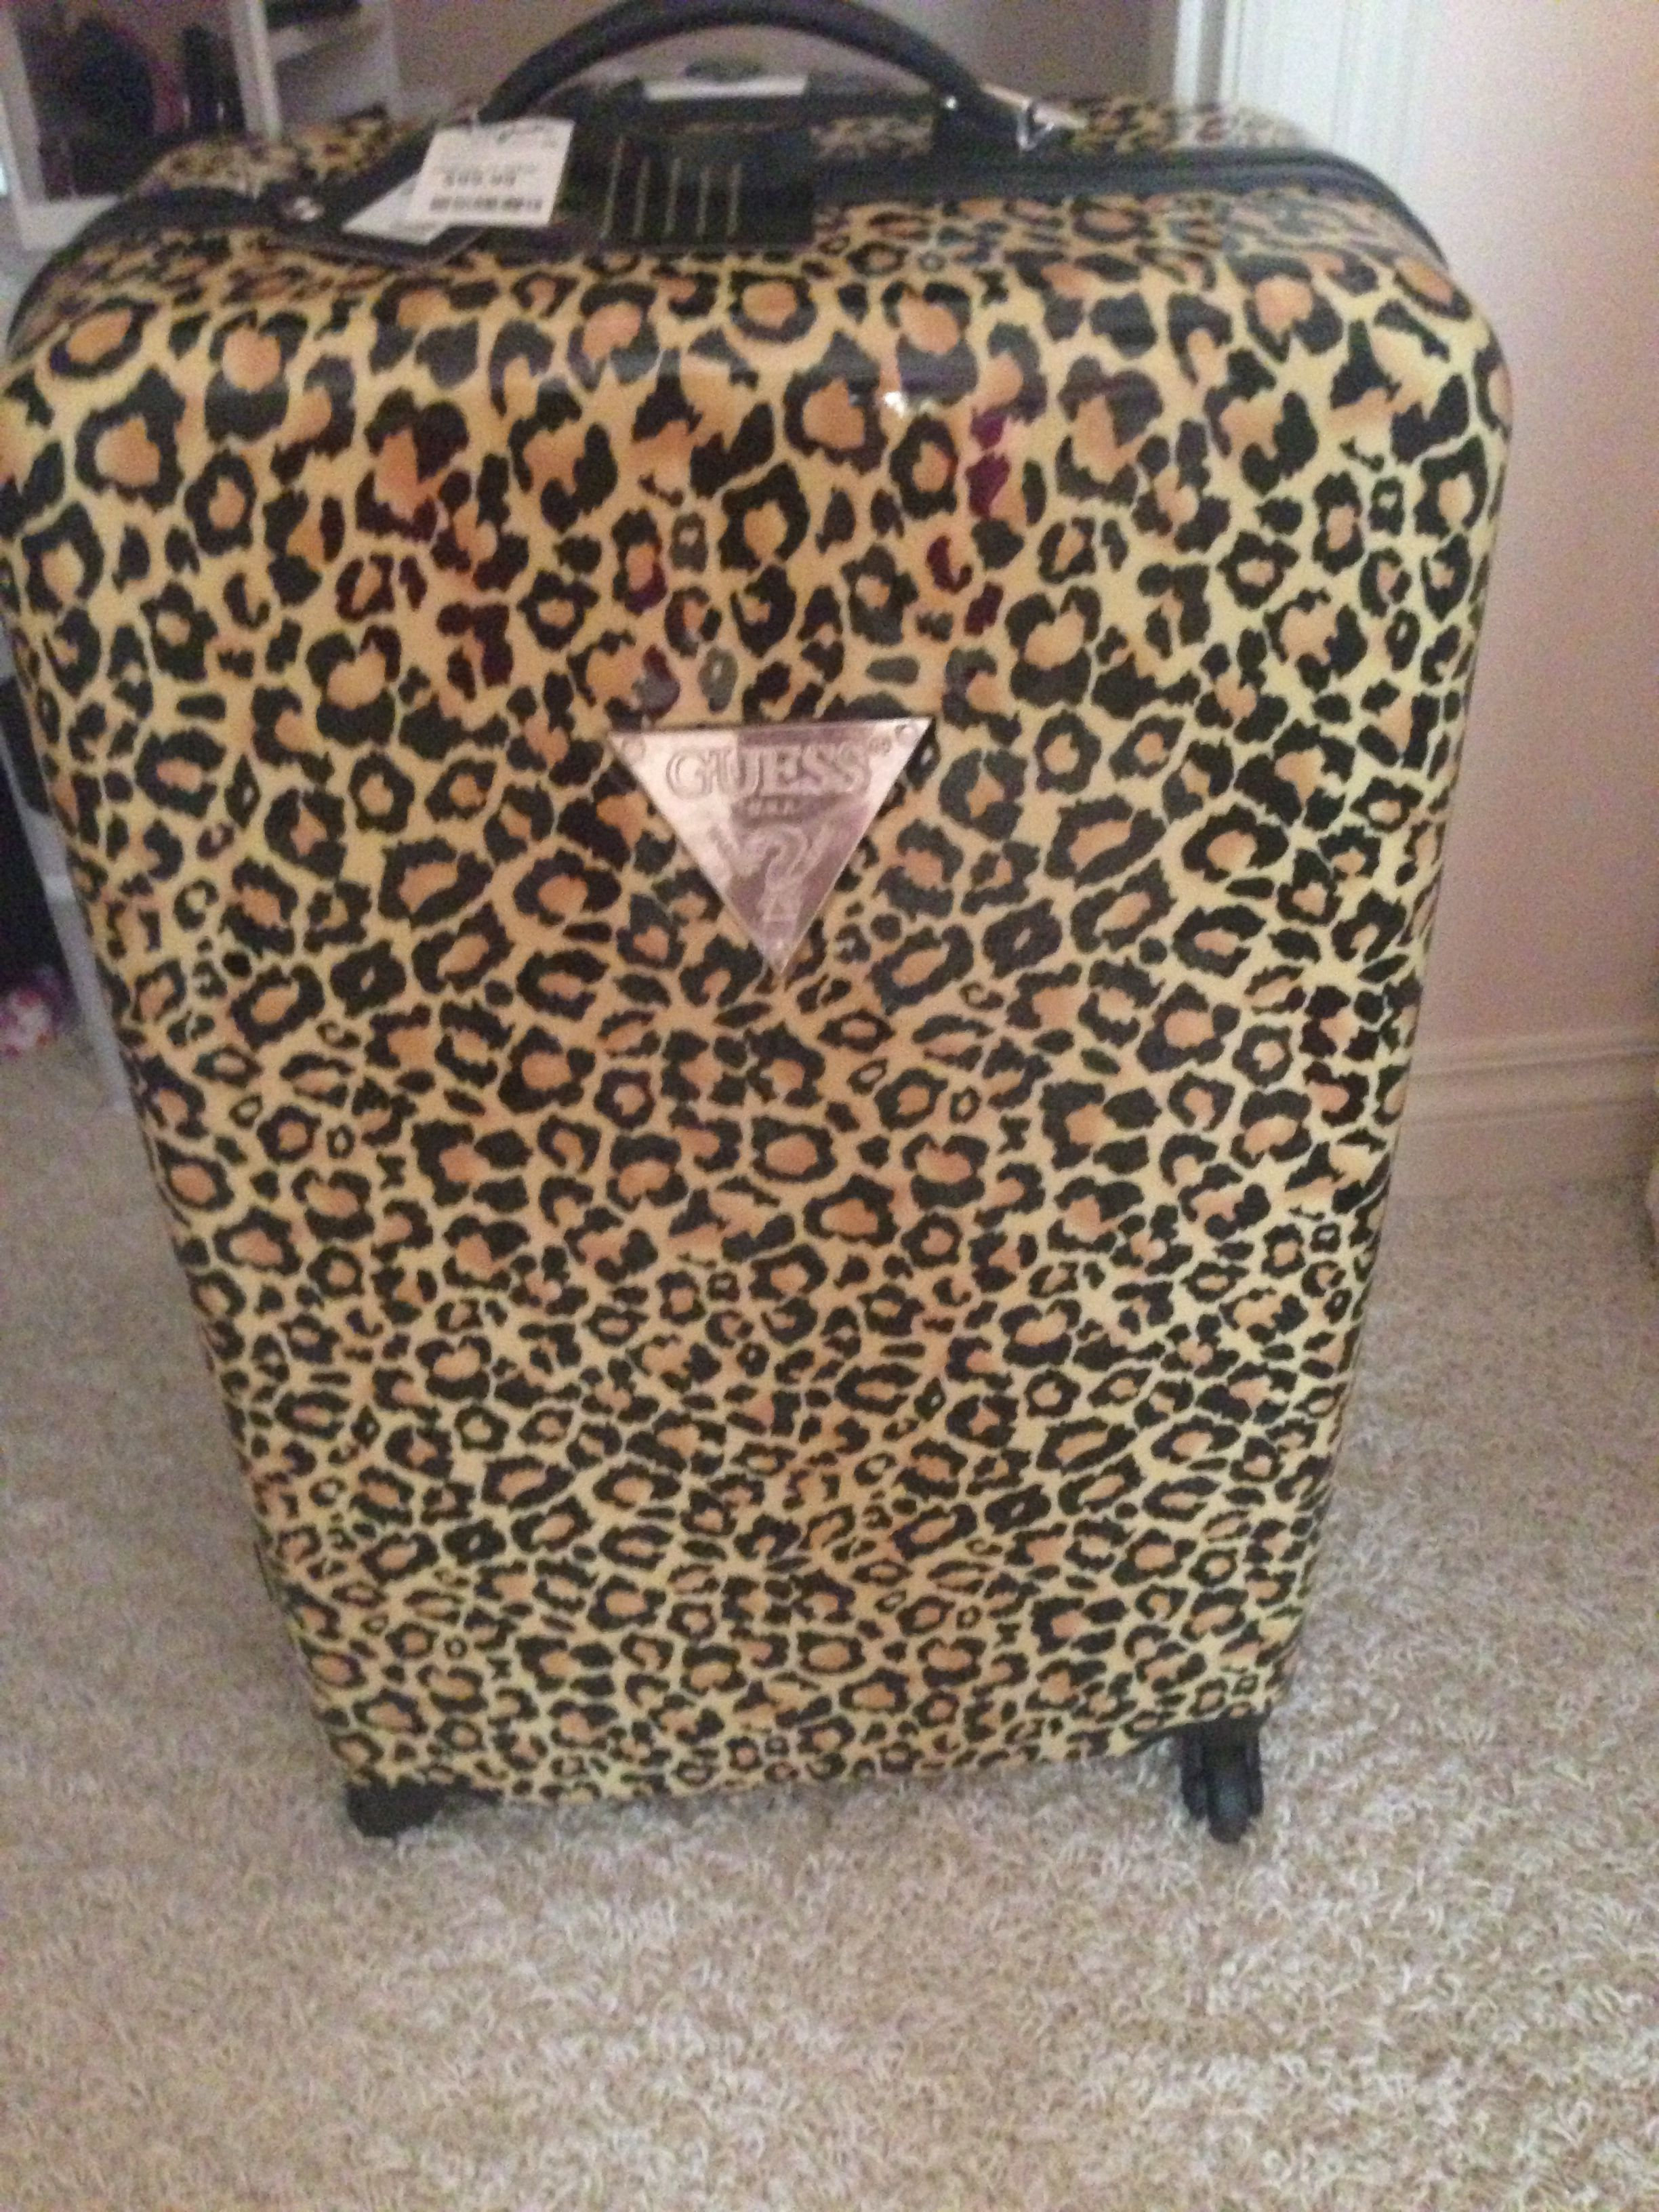 Leopard Guess Luggage Traveling In Style Leopard